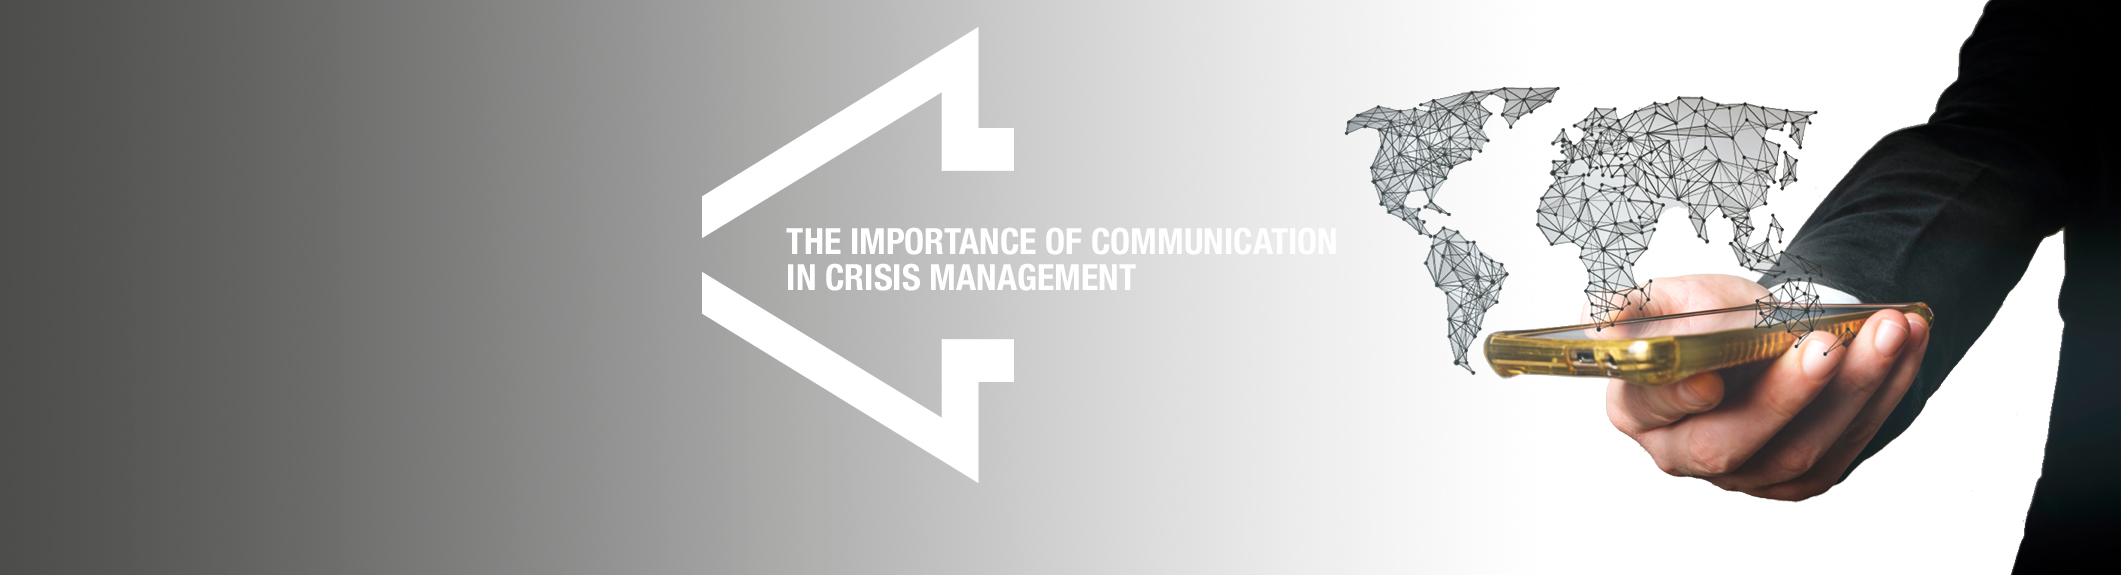 Cobalt Blog Yves Duguay The Importance of Communication in Crisis Management